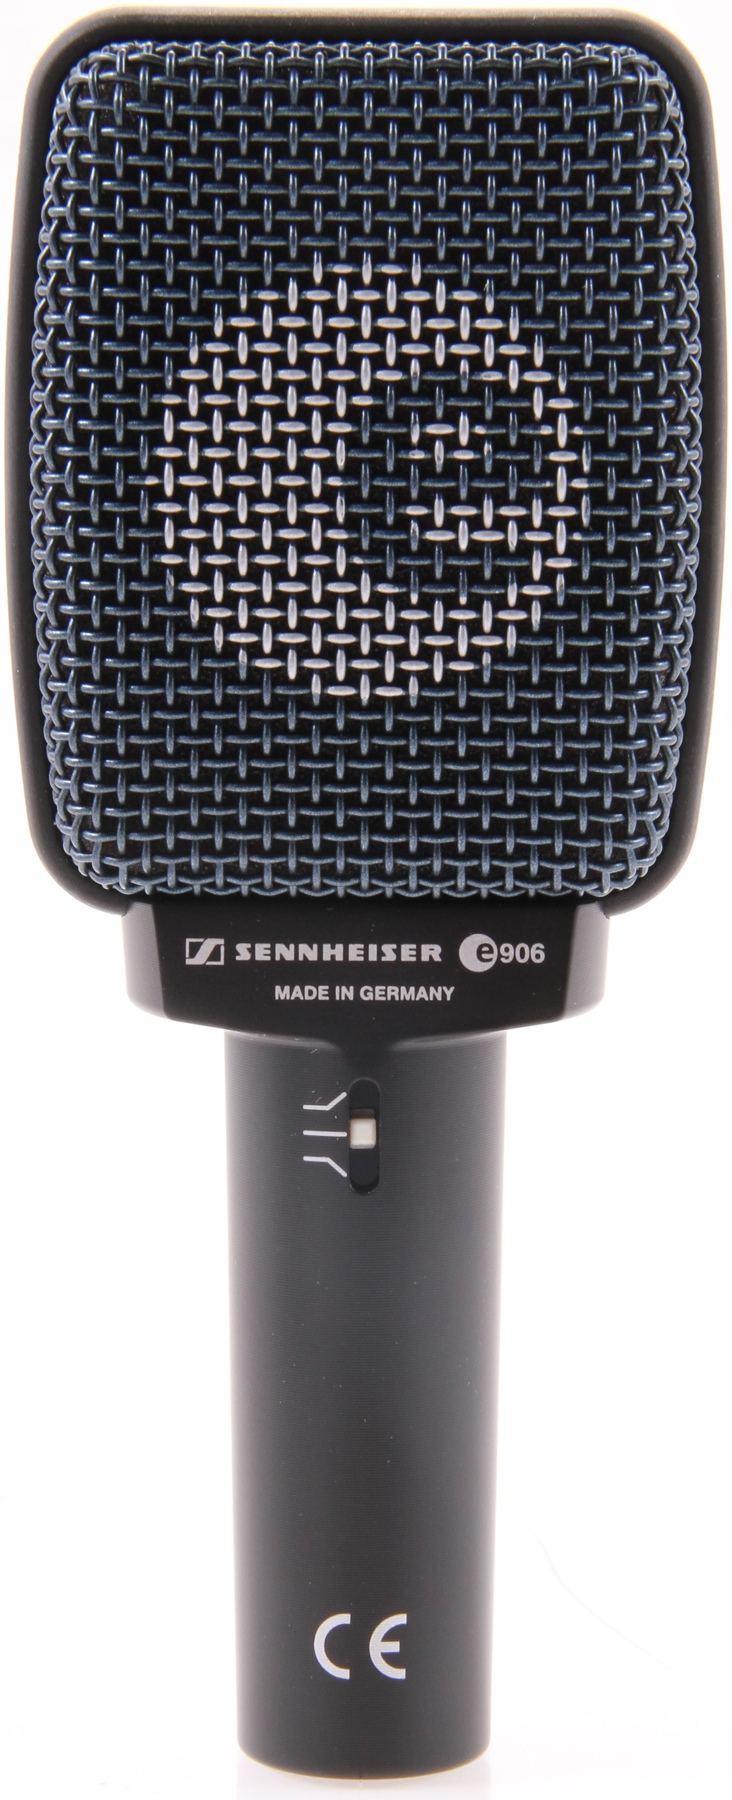 sennheiser microphone bssound. Black Bedroom Furniture Sets. Home Design Ideas